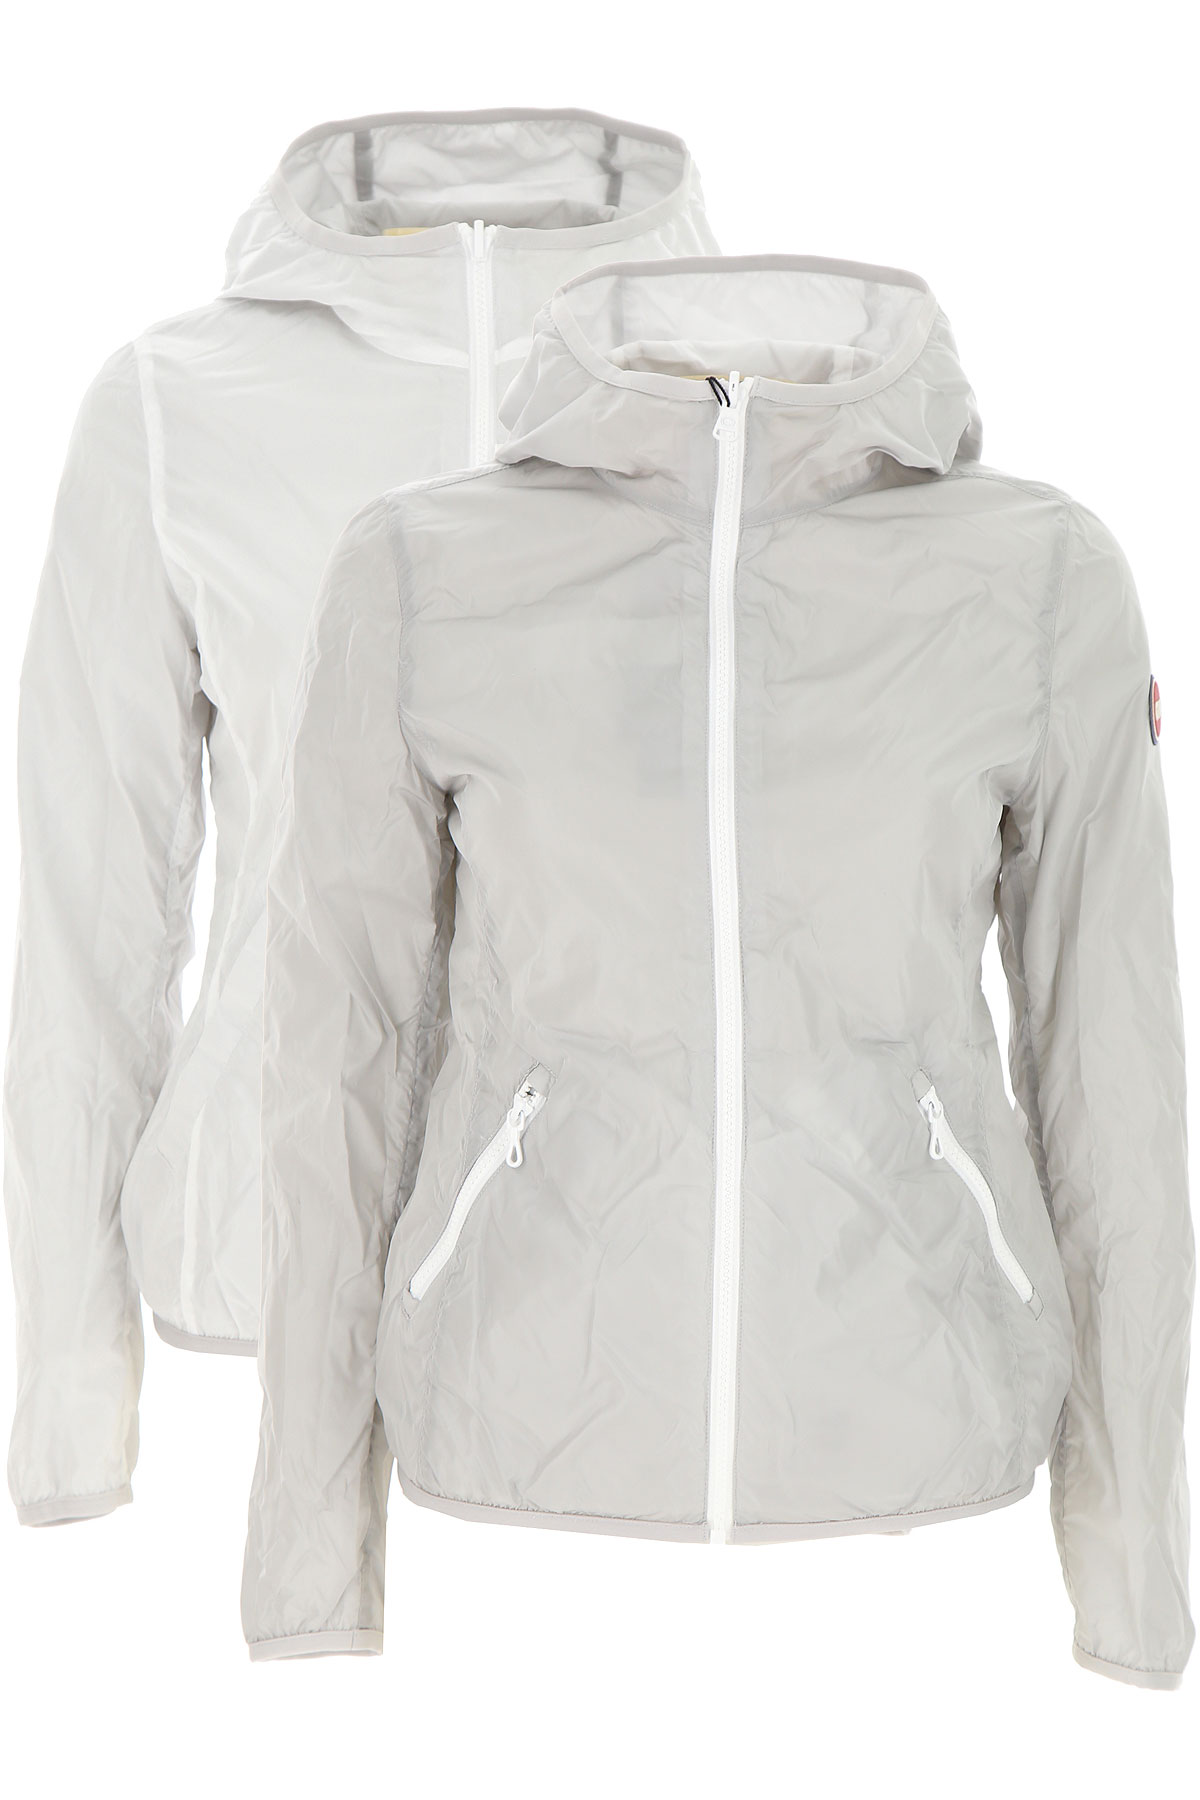 Colmar Jacket for Women On Sale, Ice Grey, polyester, 2019, 2 4 6 8